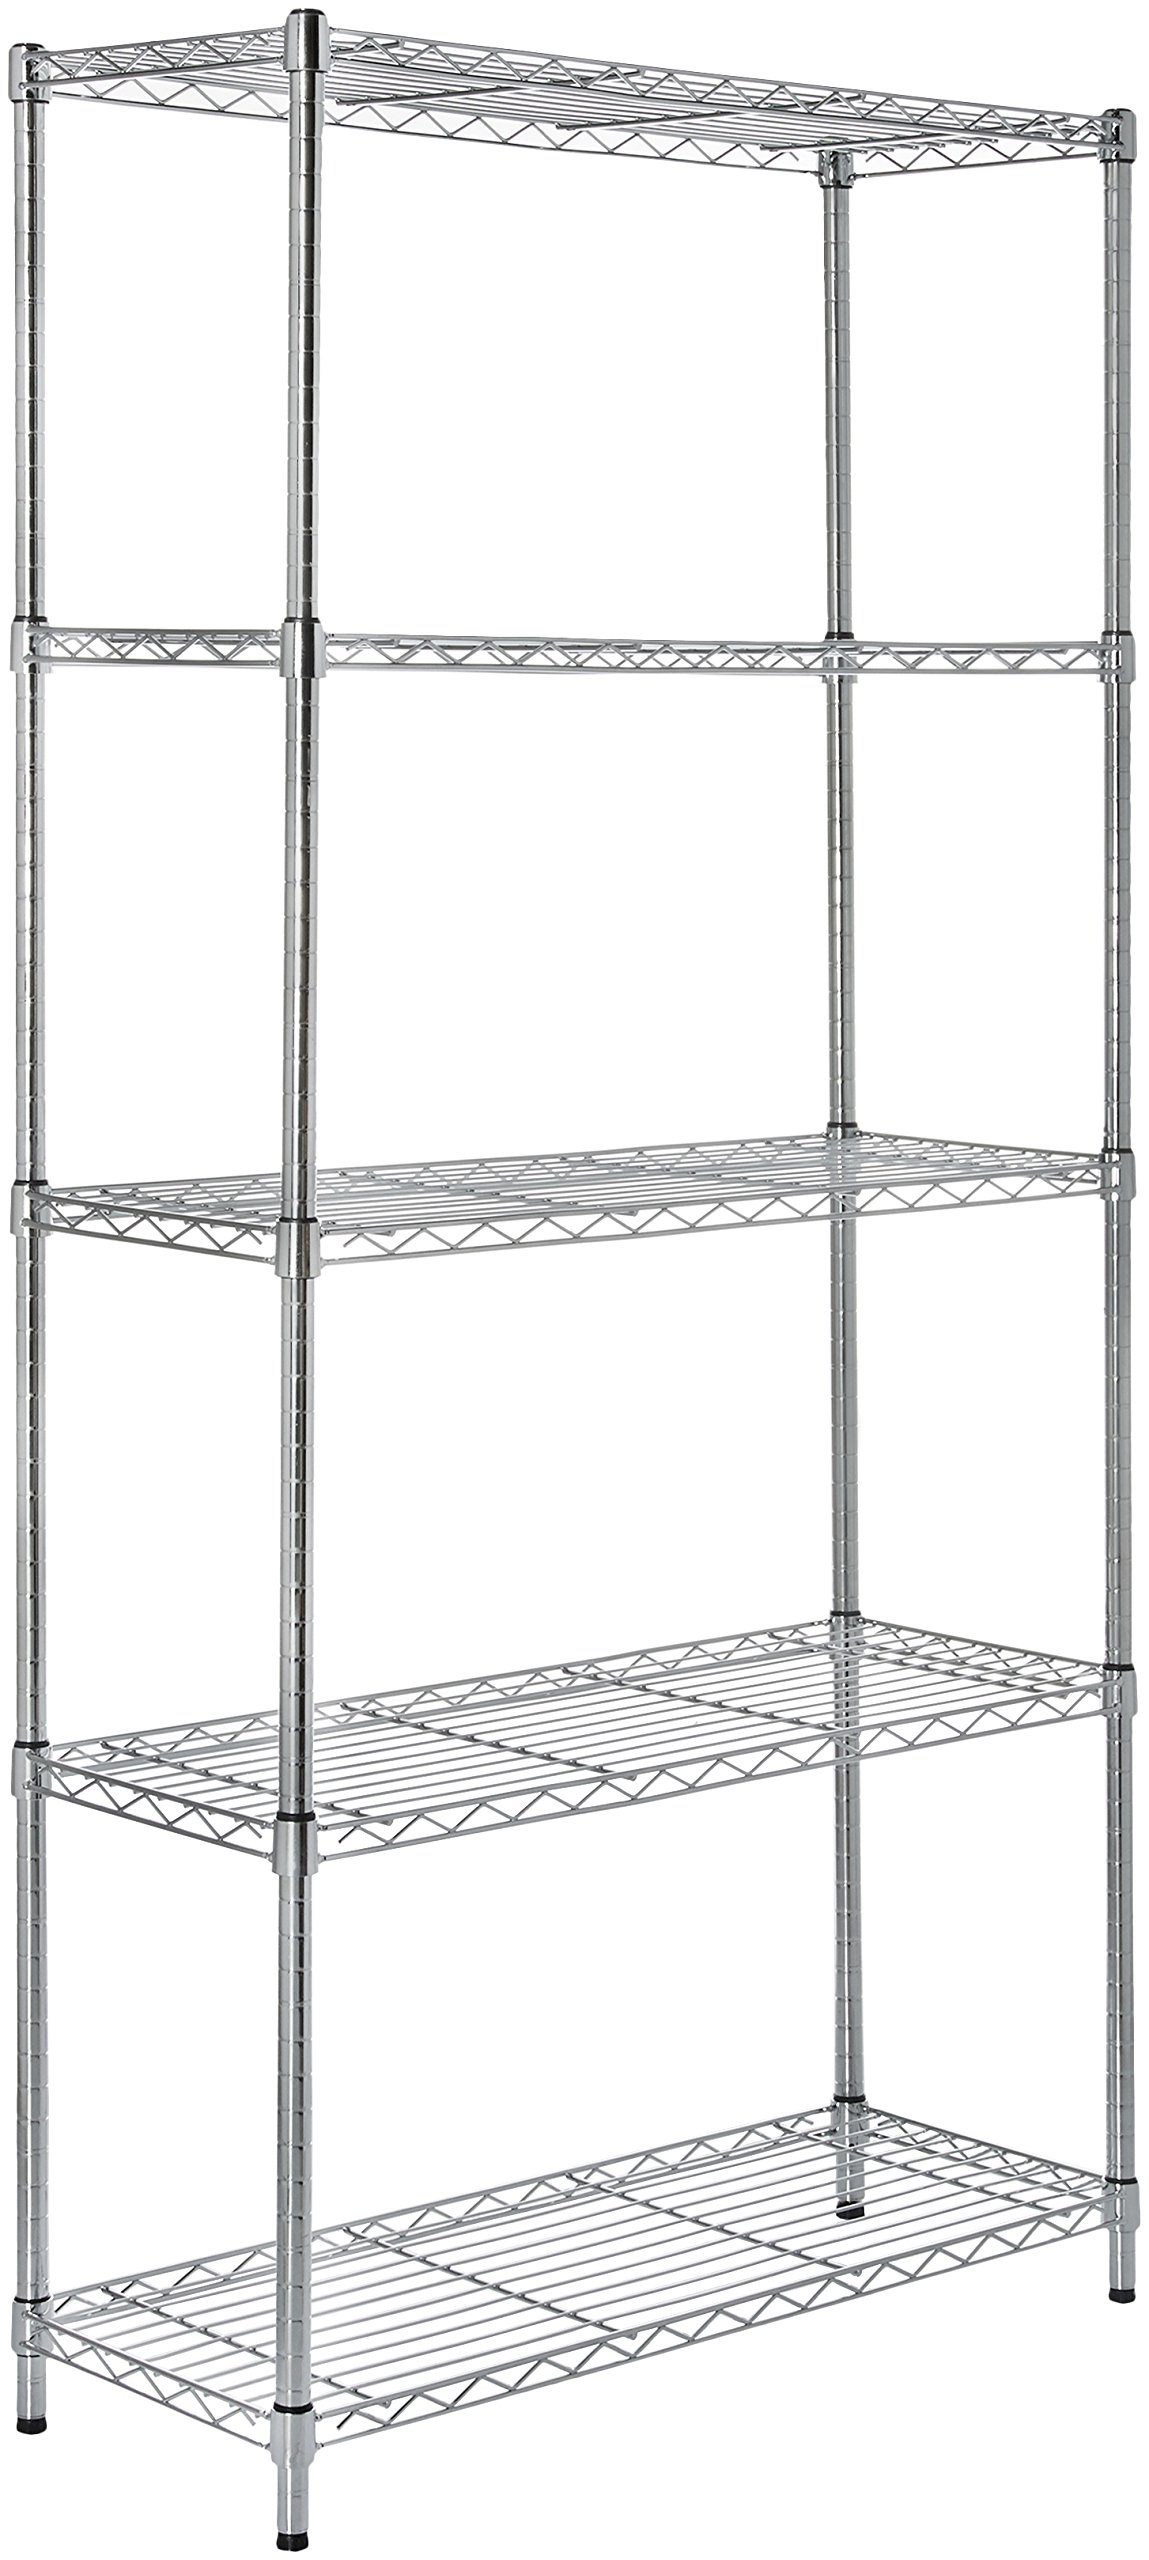 AmazonBasics 5-Shelf Shelving Unit - Chrome by AmazonBasics (Image #1)